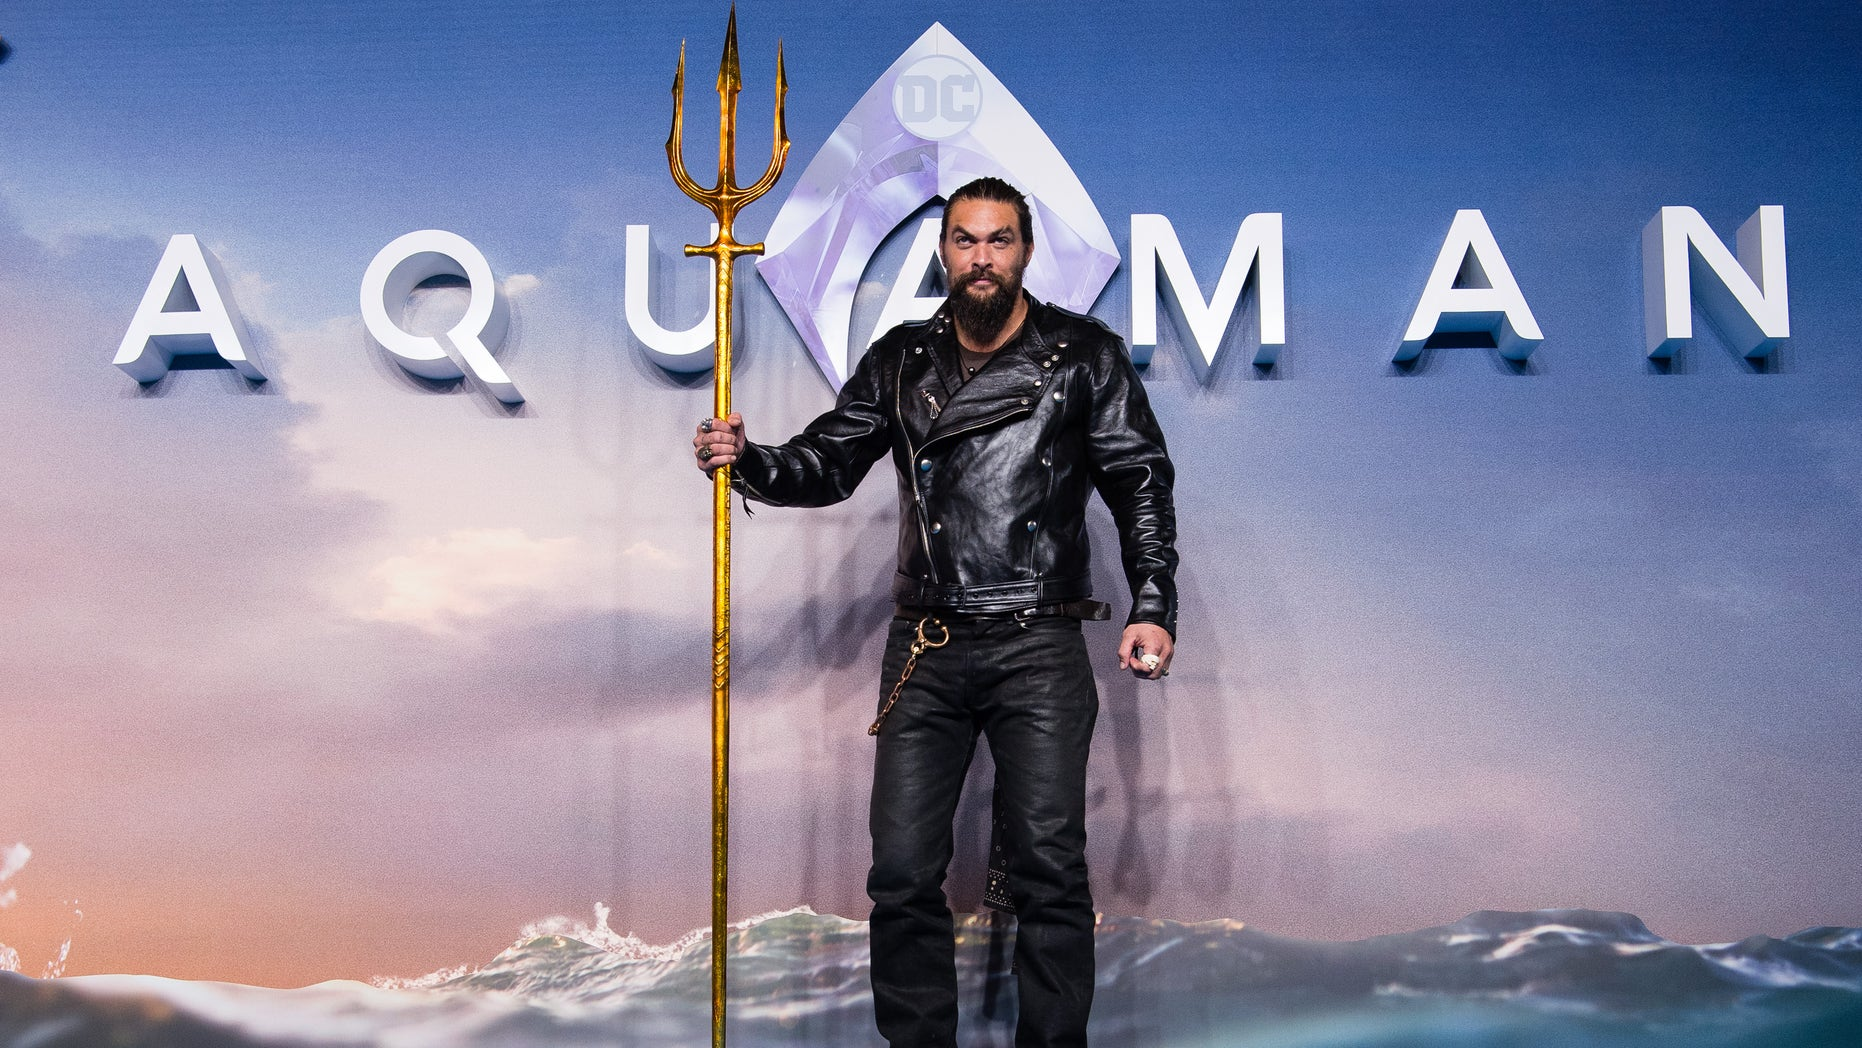 'Aquaman' scored a big win at the Chinese box office.